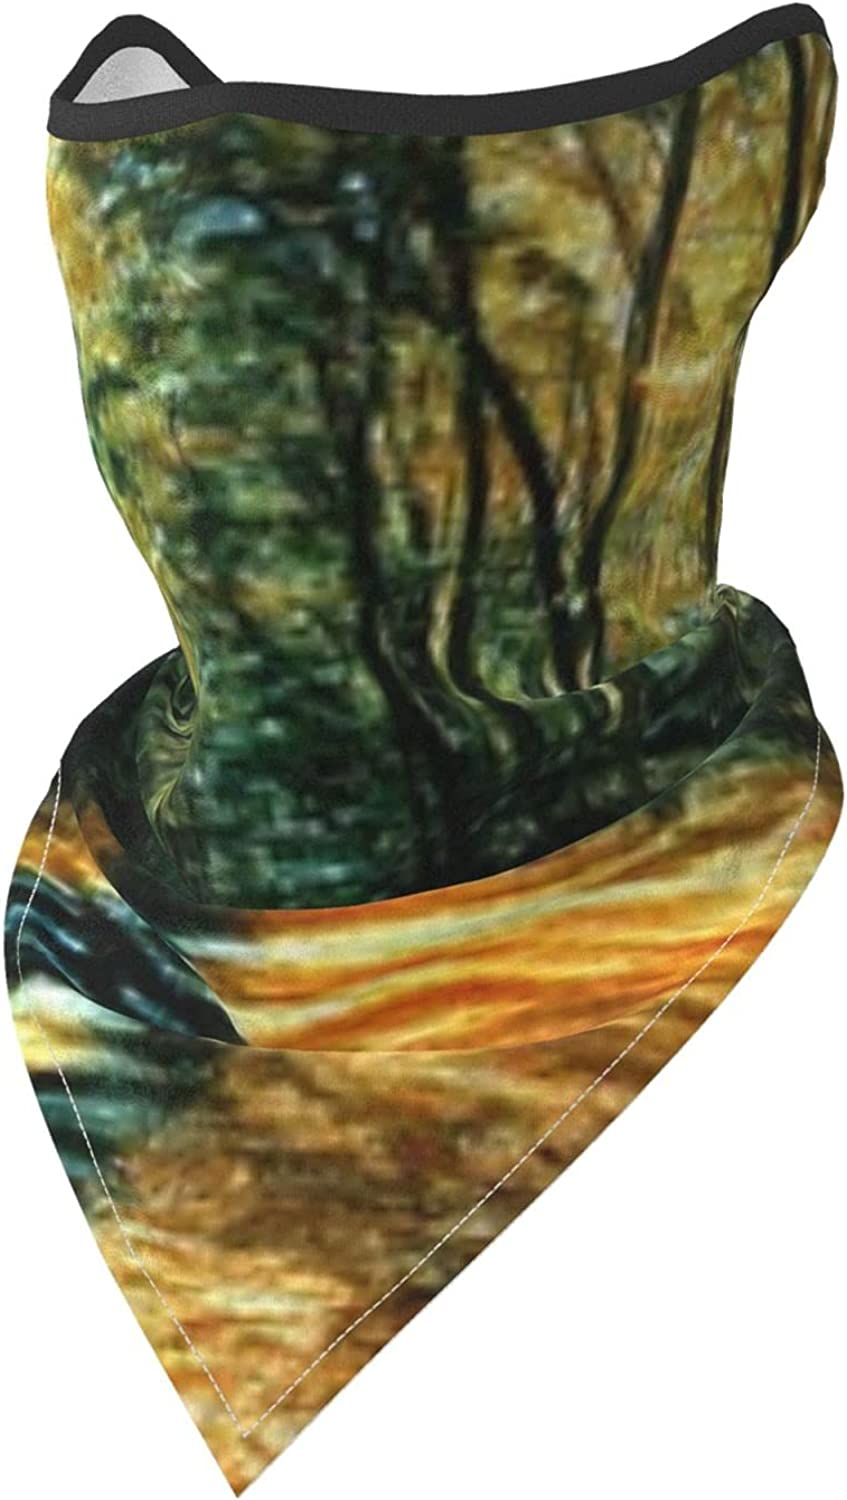 Oil Painting Autumn Forest Tree Breathable Bandana Face Mask Neck Gaiter Windproof Sports Mask Scarf Headwear for Men Women Outdoor Hiking Cycling Running Motorcycling